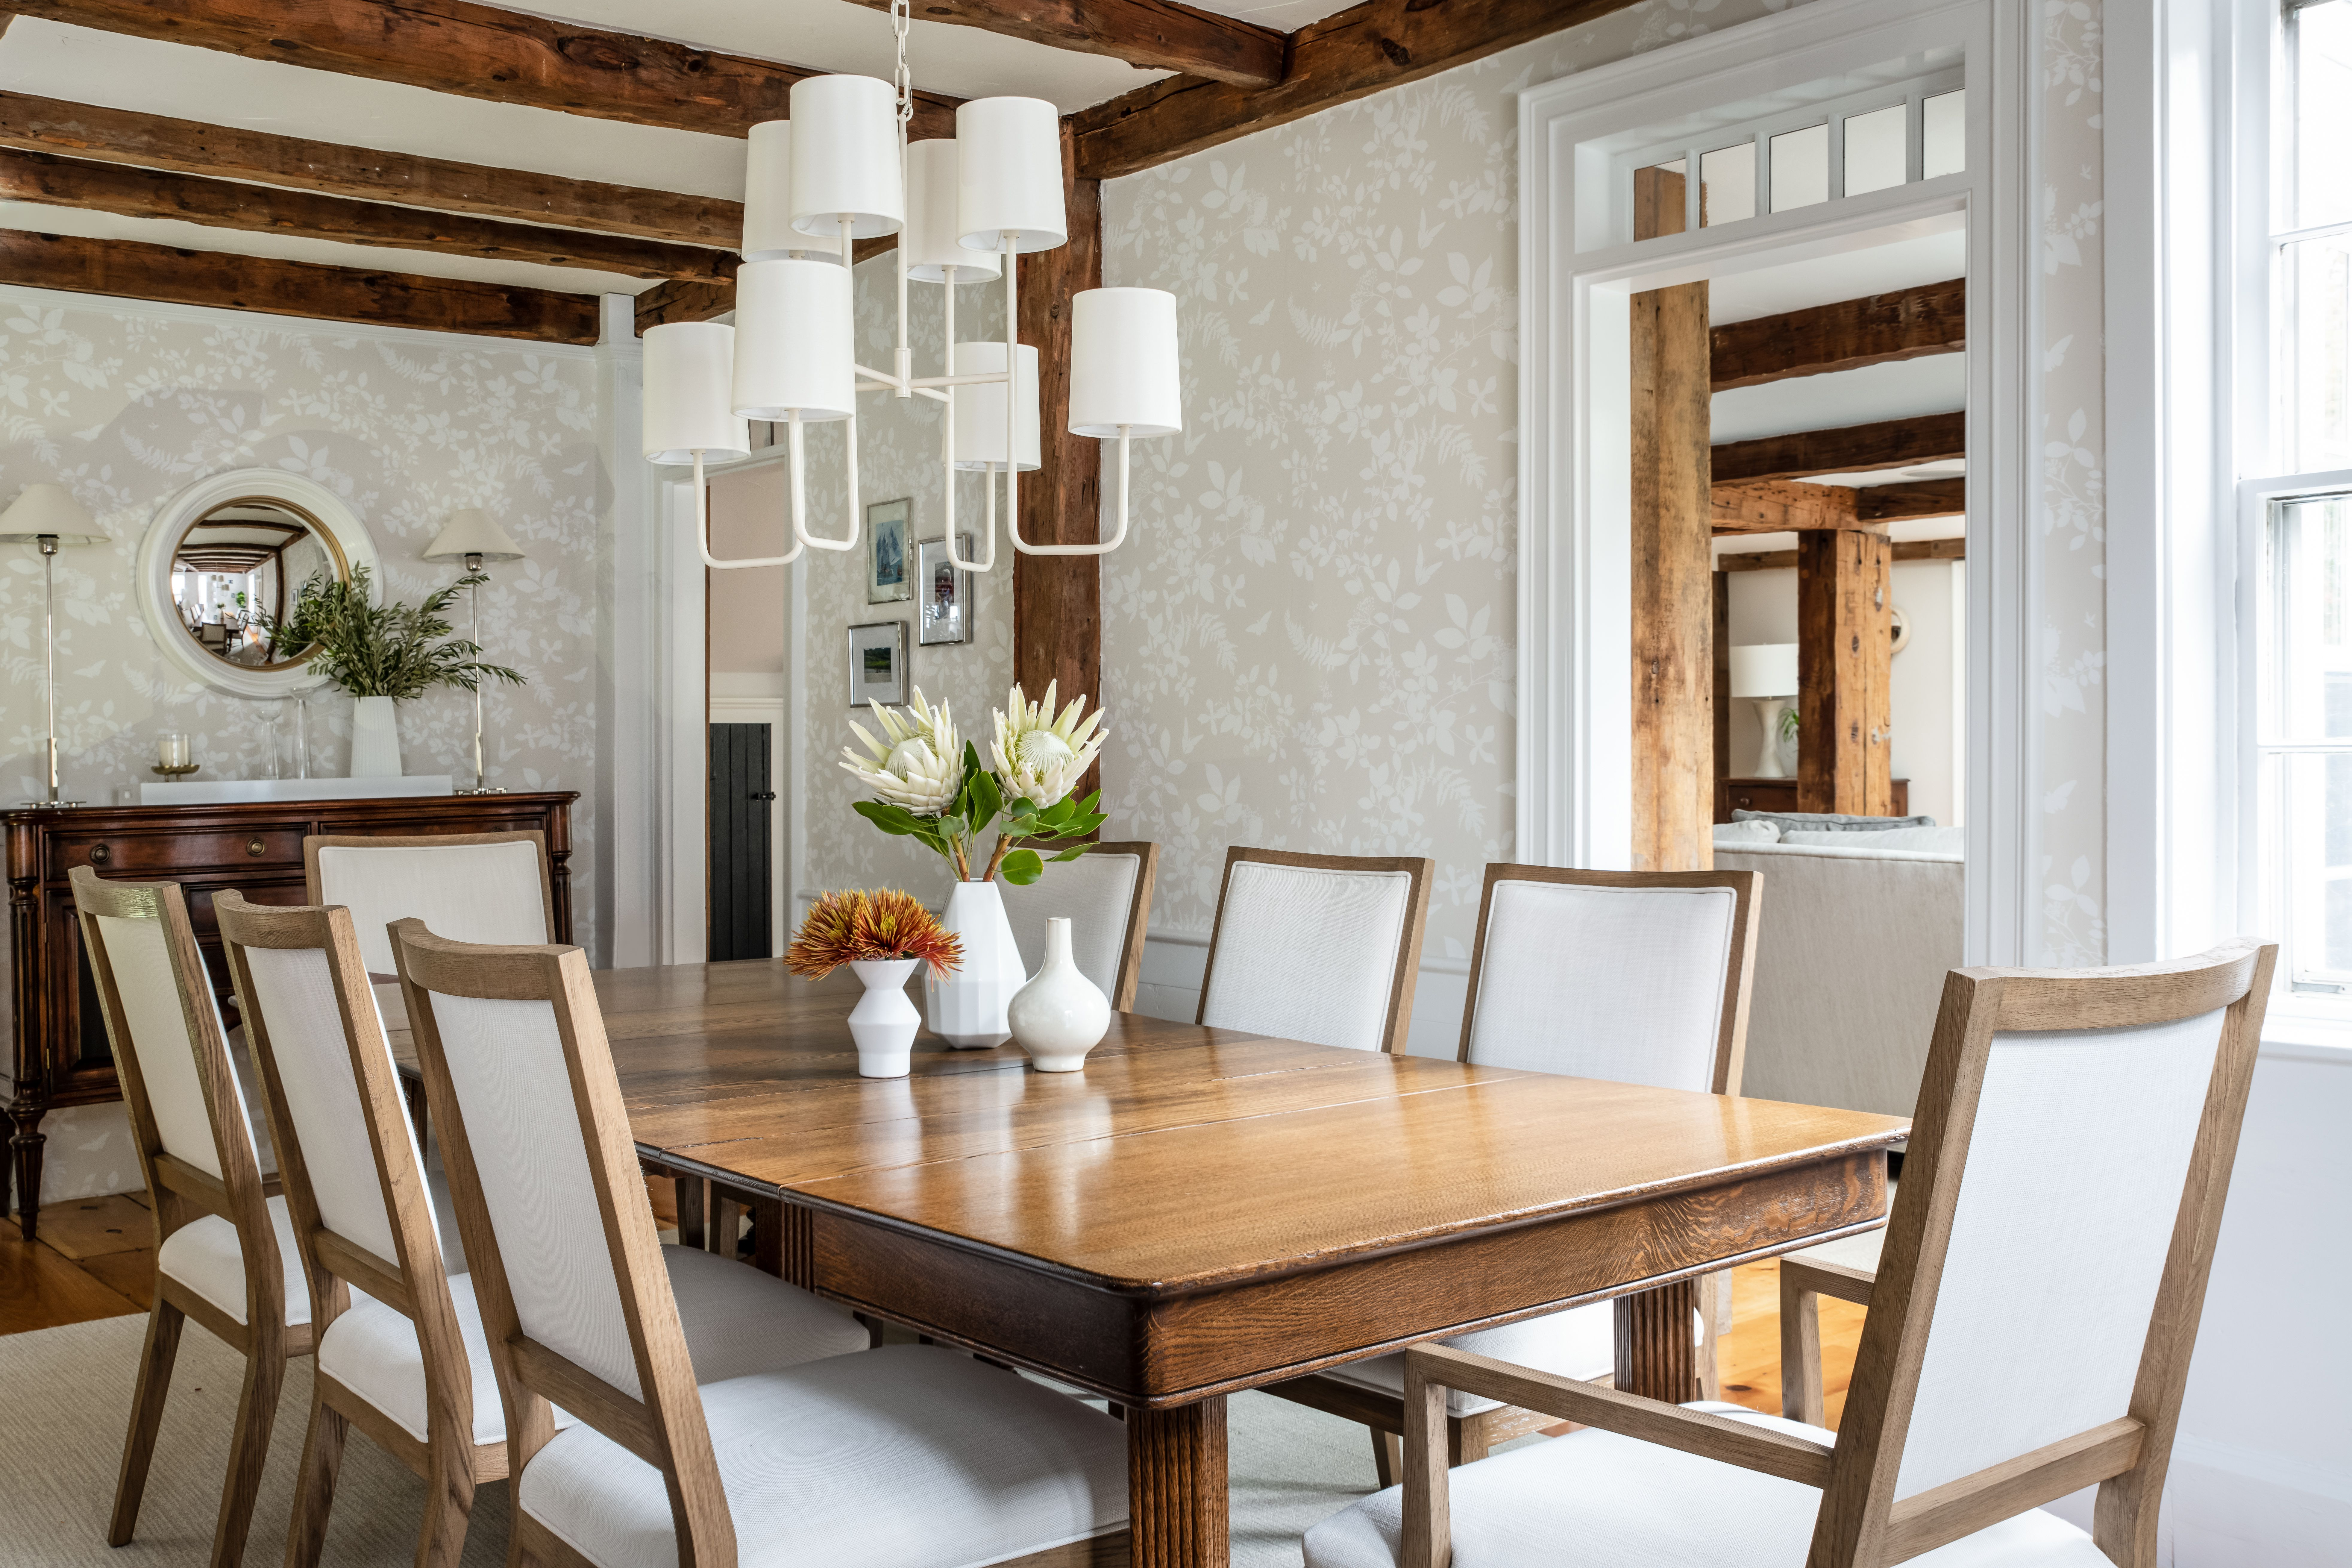 Decorating A New Home Where To Start from thumbor-prod-us-east-1.photo.aws.arc.pub